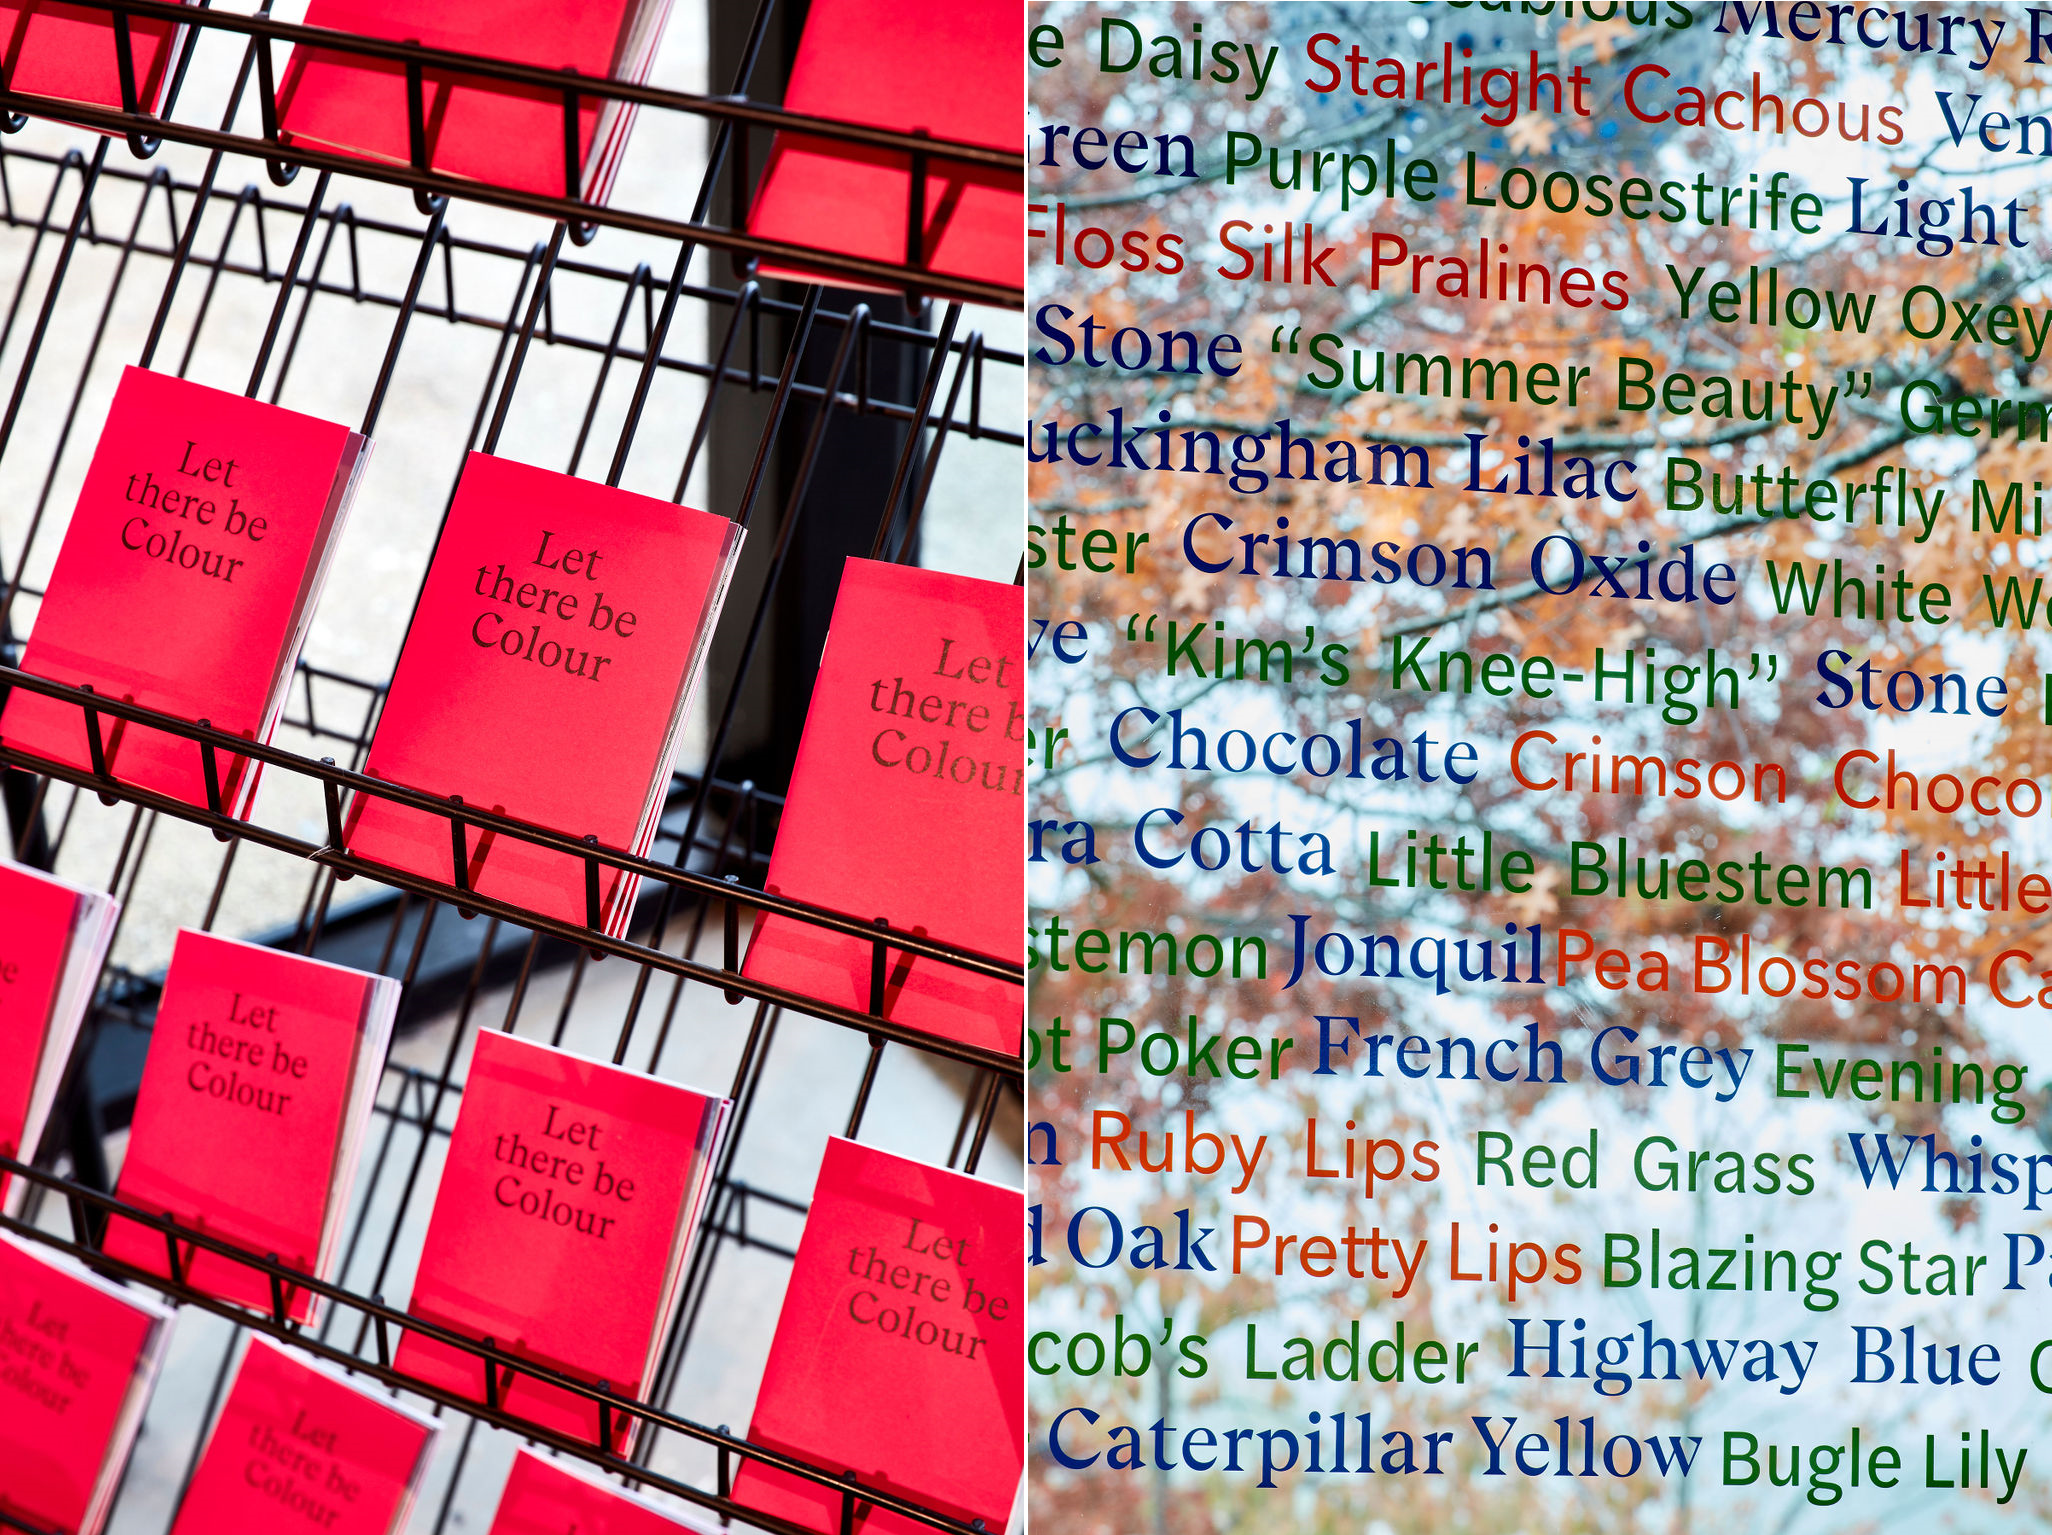 two image side by side. On left, bright red booklets on rack saying 'let there be colour'. On right, multicoloured text on glass in front of orange and green leaves. Text is names of colours.